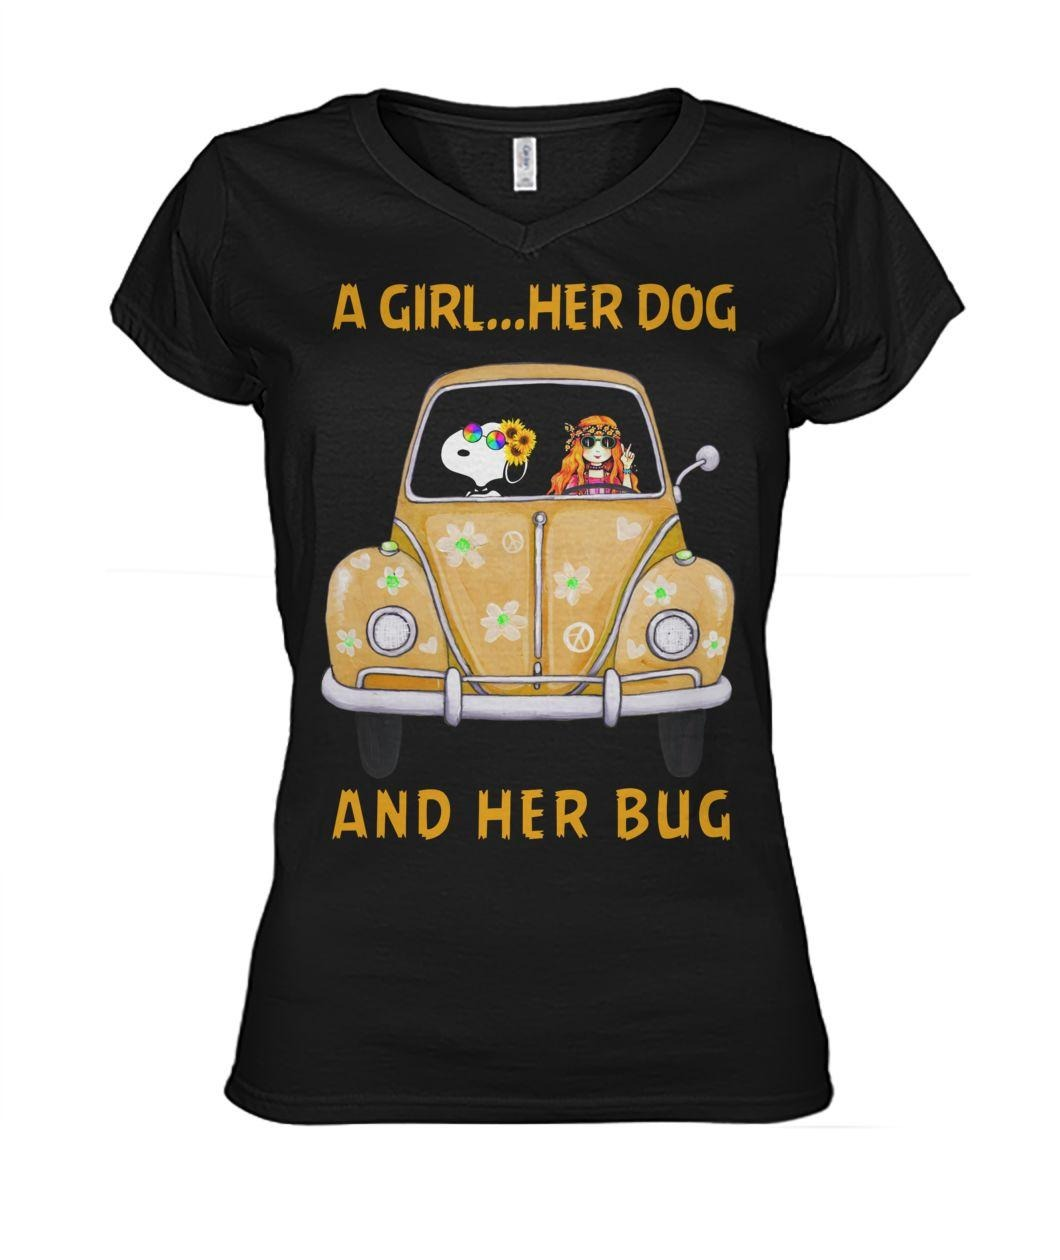 Snoopy a girl her dog and her bug V-neck T-shirt